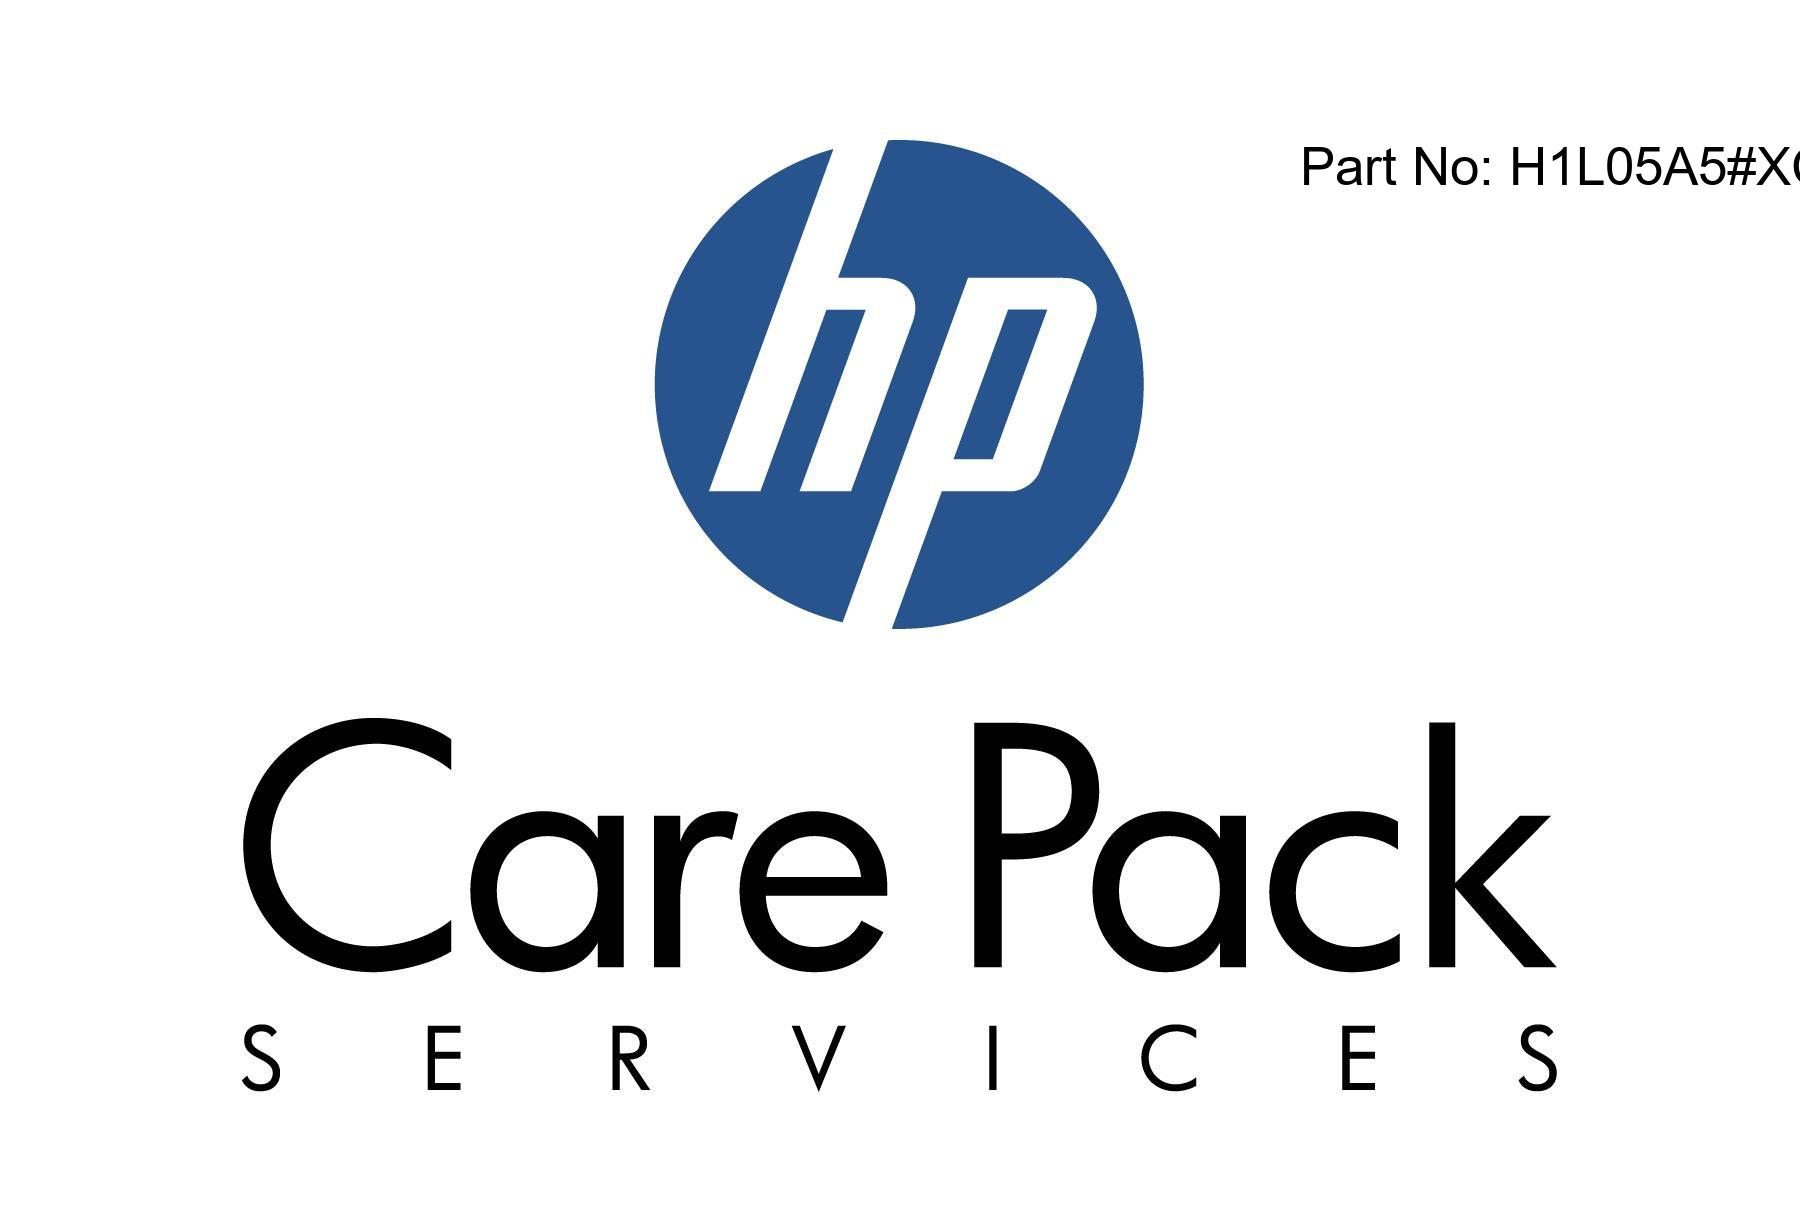 Standard Partner Branded Support - Technical support - for HPE 3PAR 8450 Operating System Suite - 8 drives - phone consulting - 5 years - 24x7